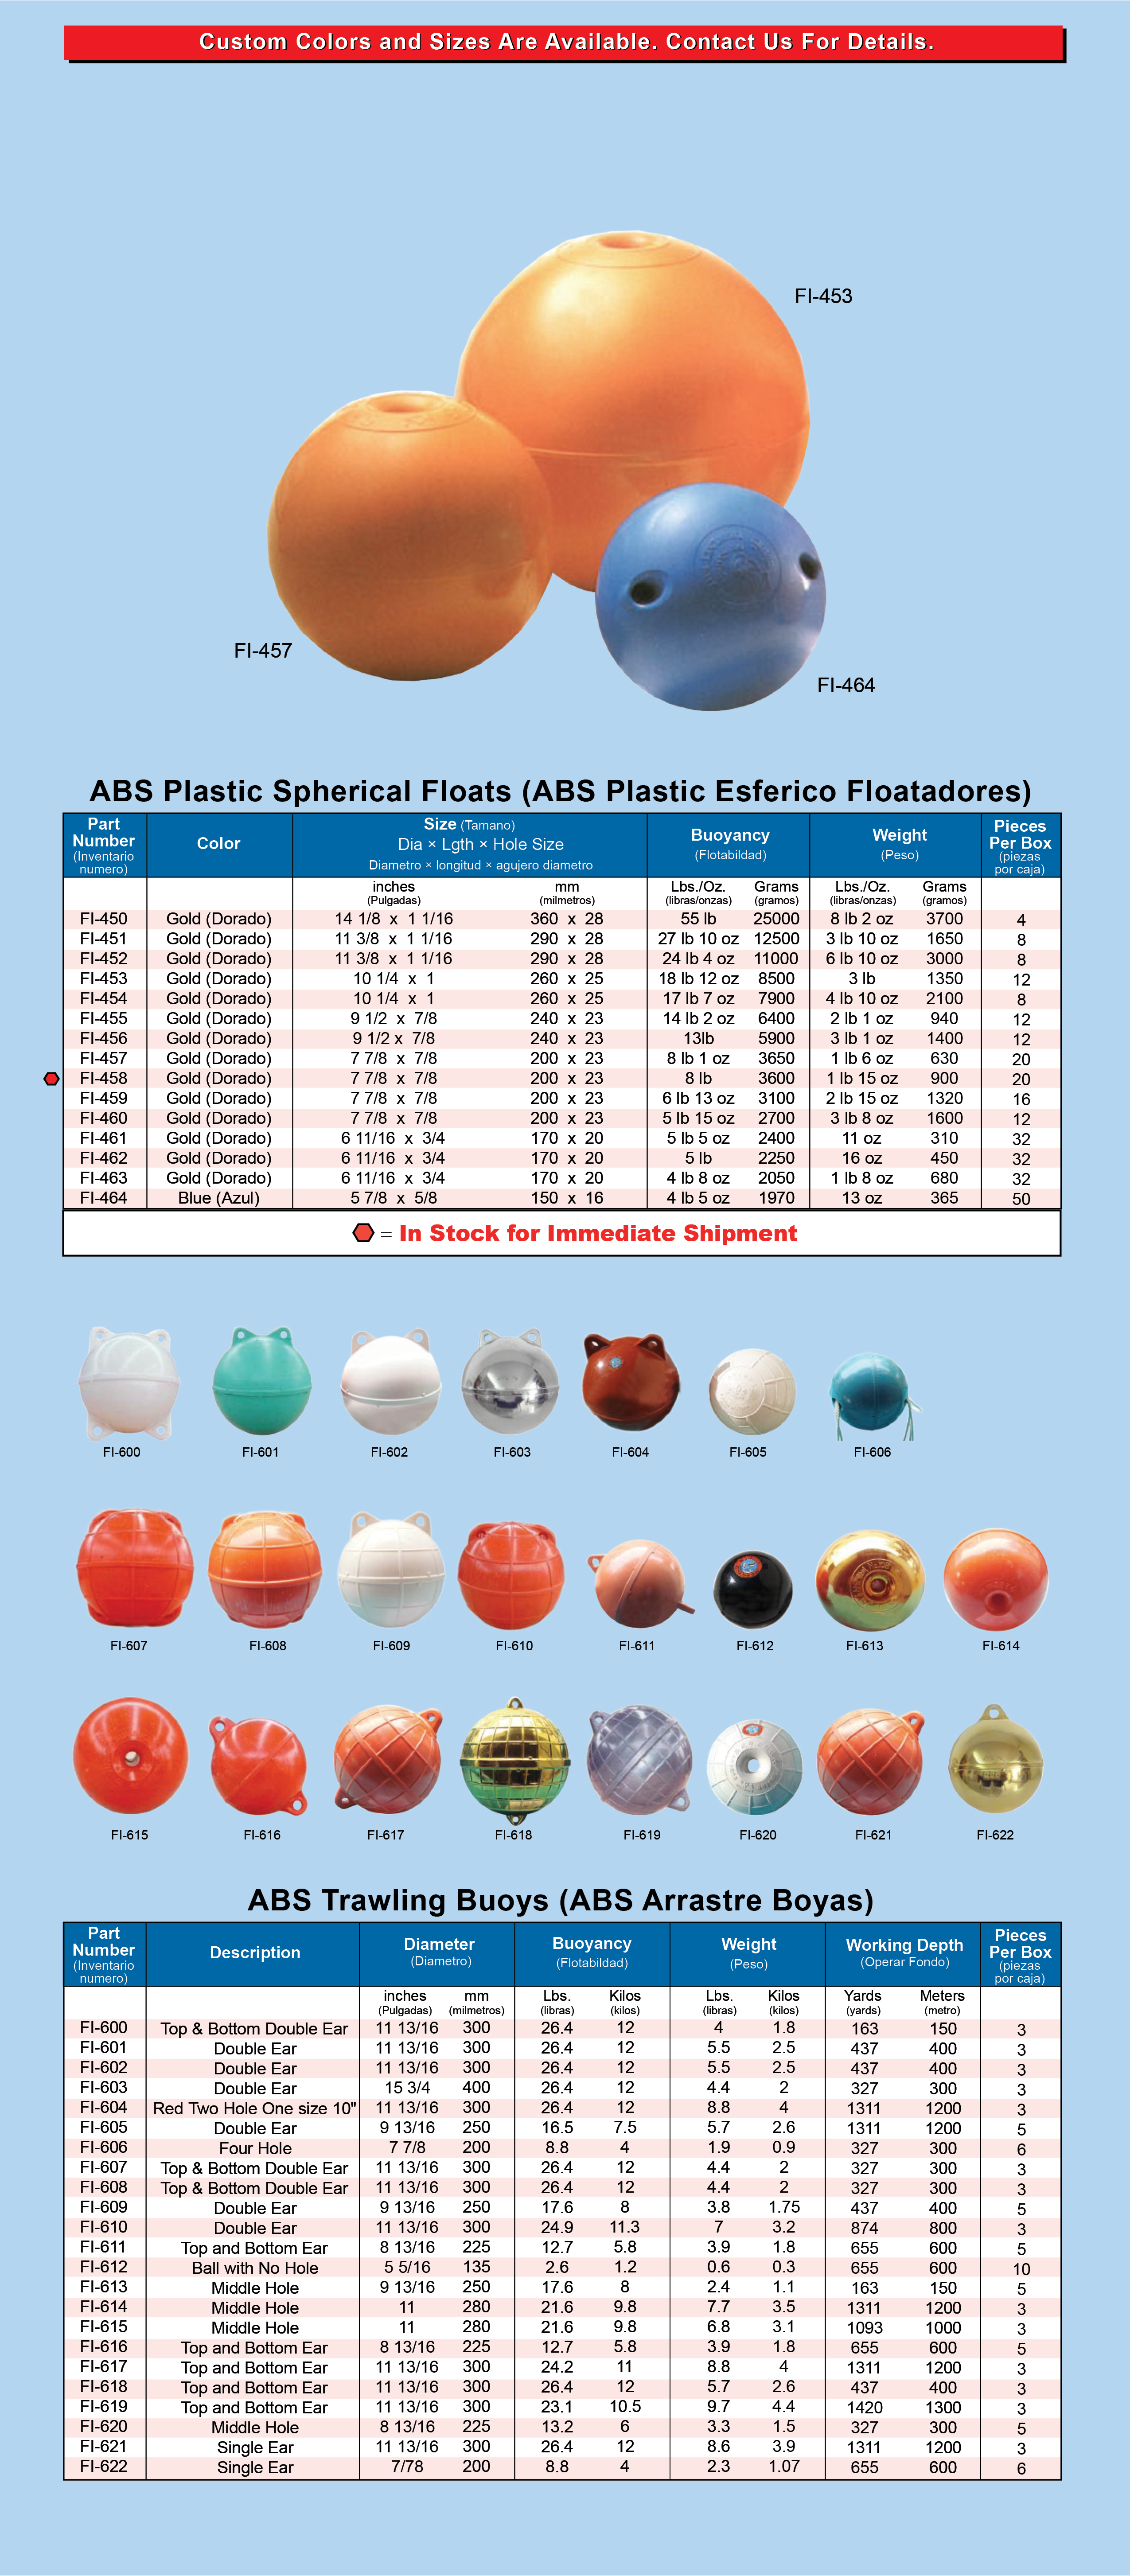 ABS Spherical Trawls and Buoy